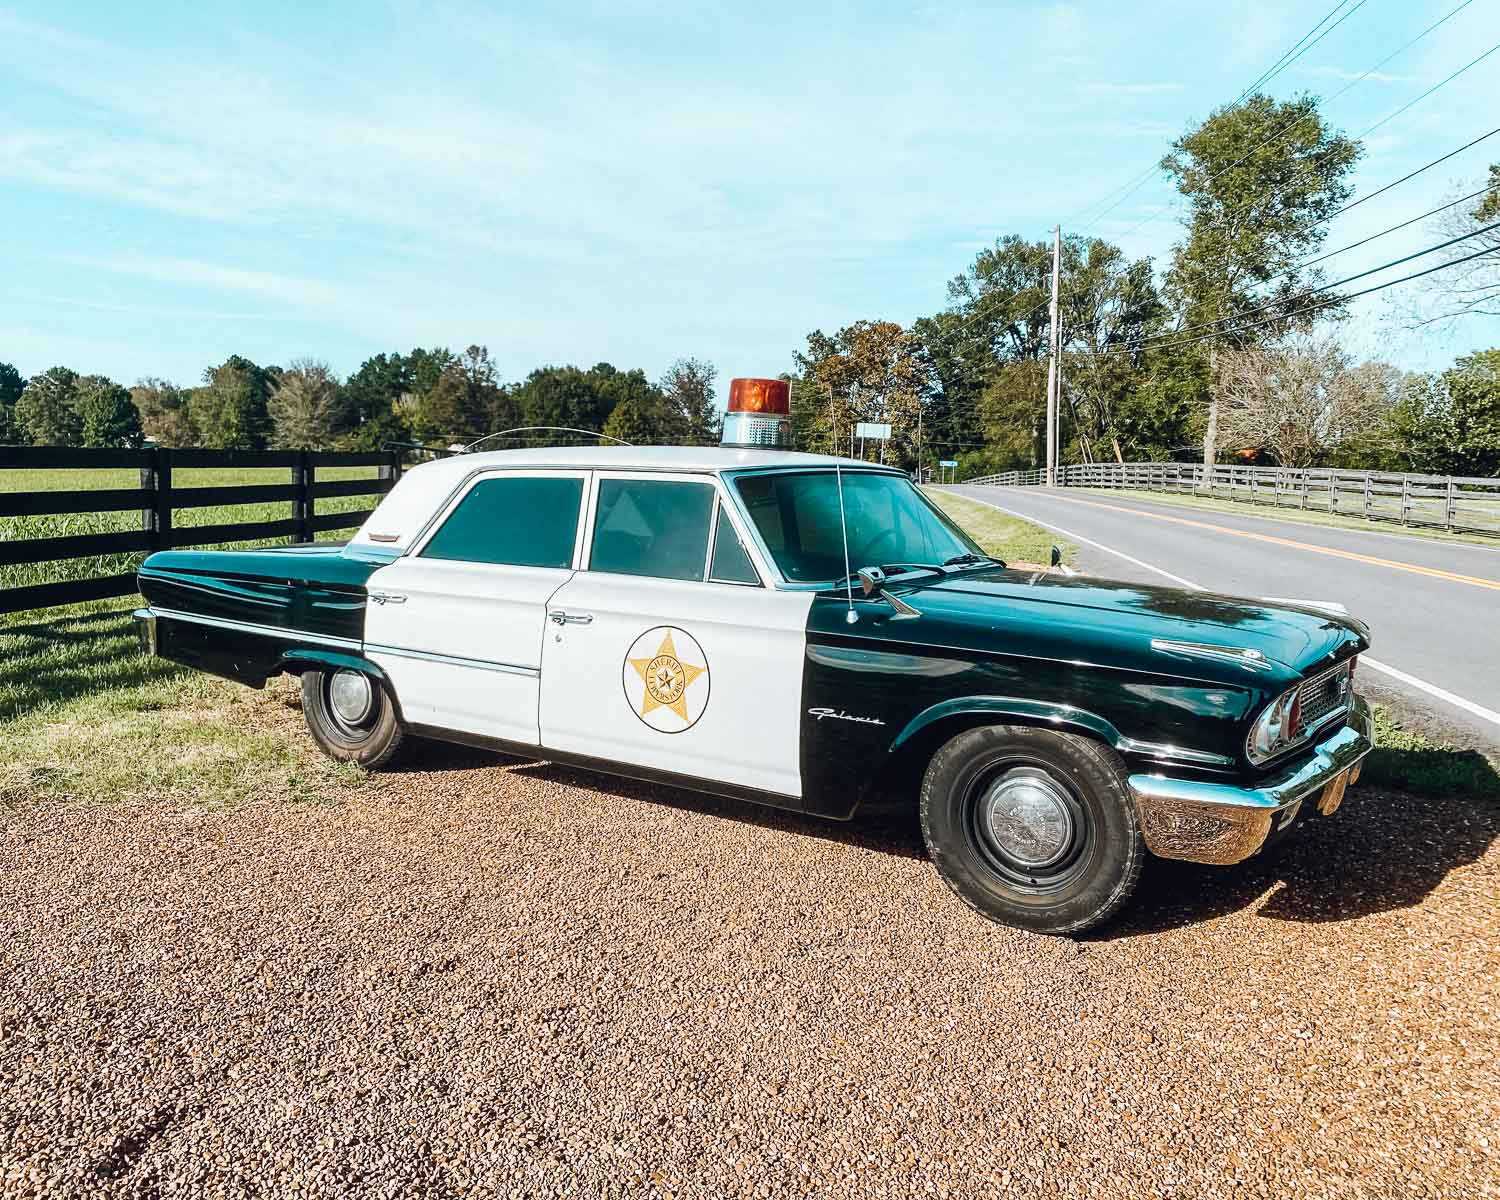 An old-fashioned cop car sitting on the side of the road in Leiper's Fork, Tennessee.